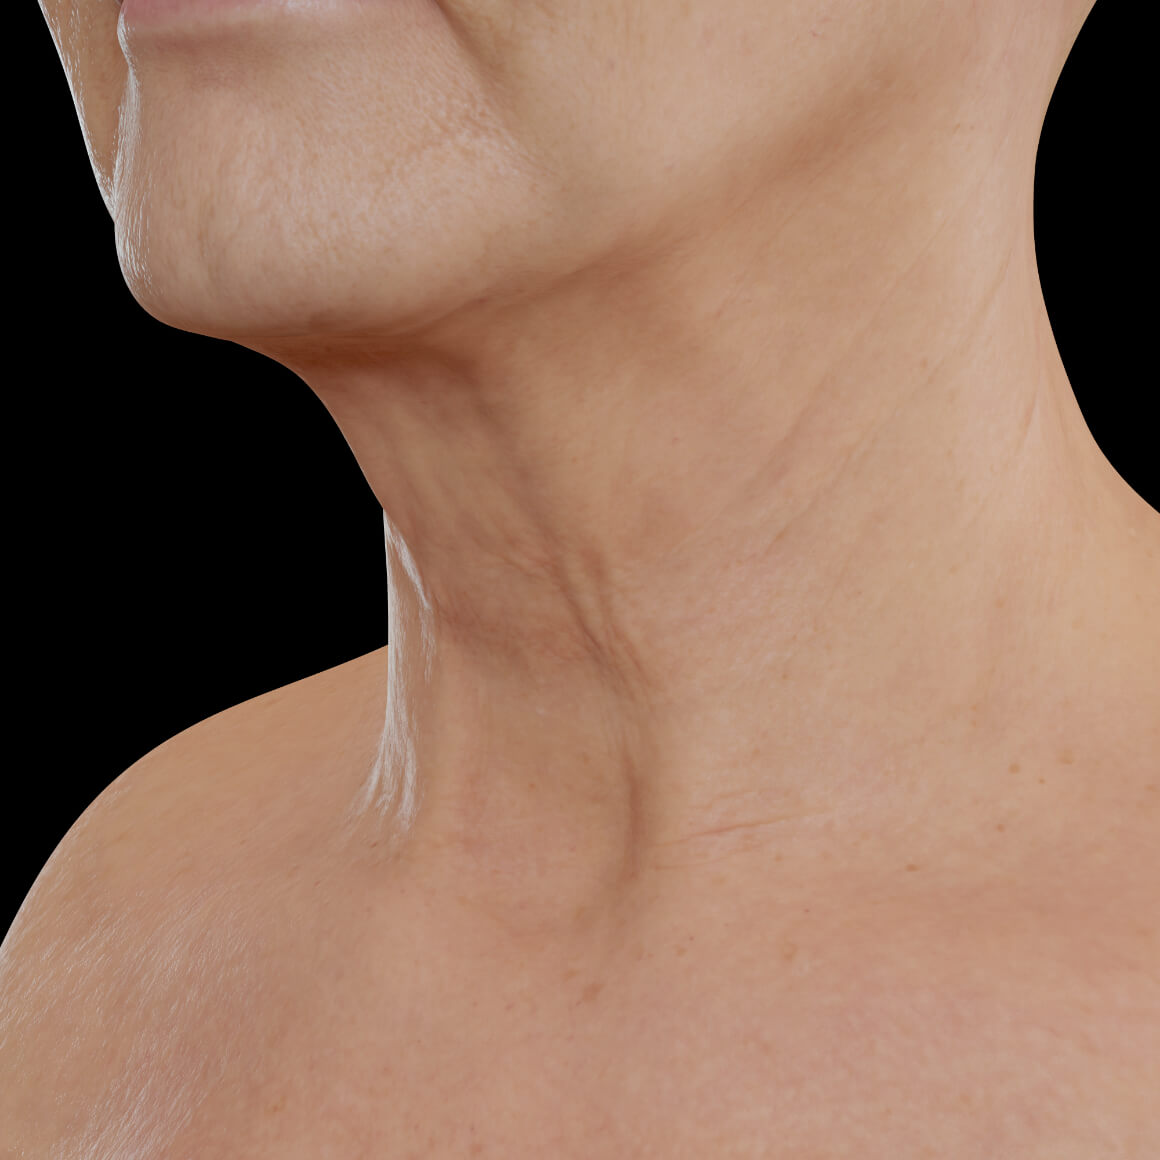 Female patient from Clinique Chloé positioned at an angle after neuromodulator injections in the neck area for skin firmness